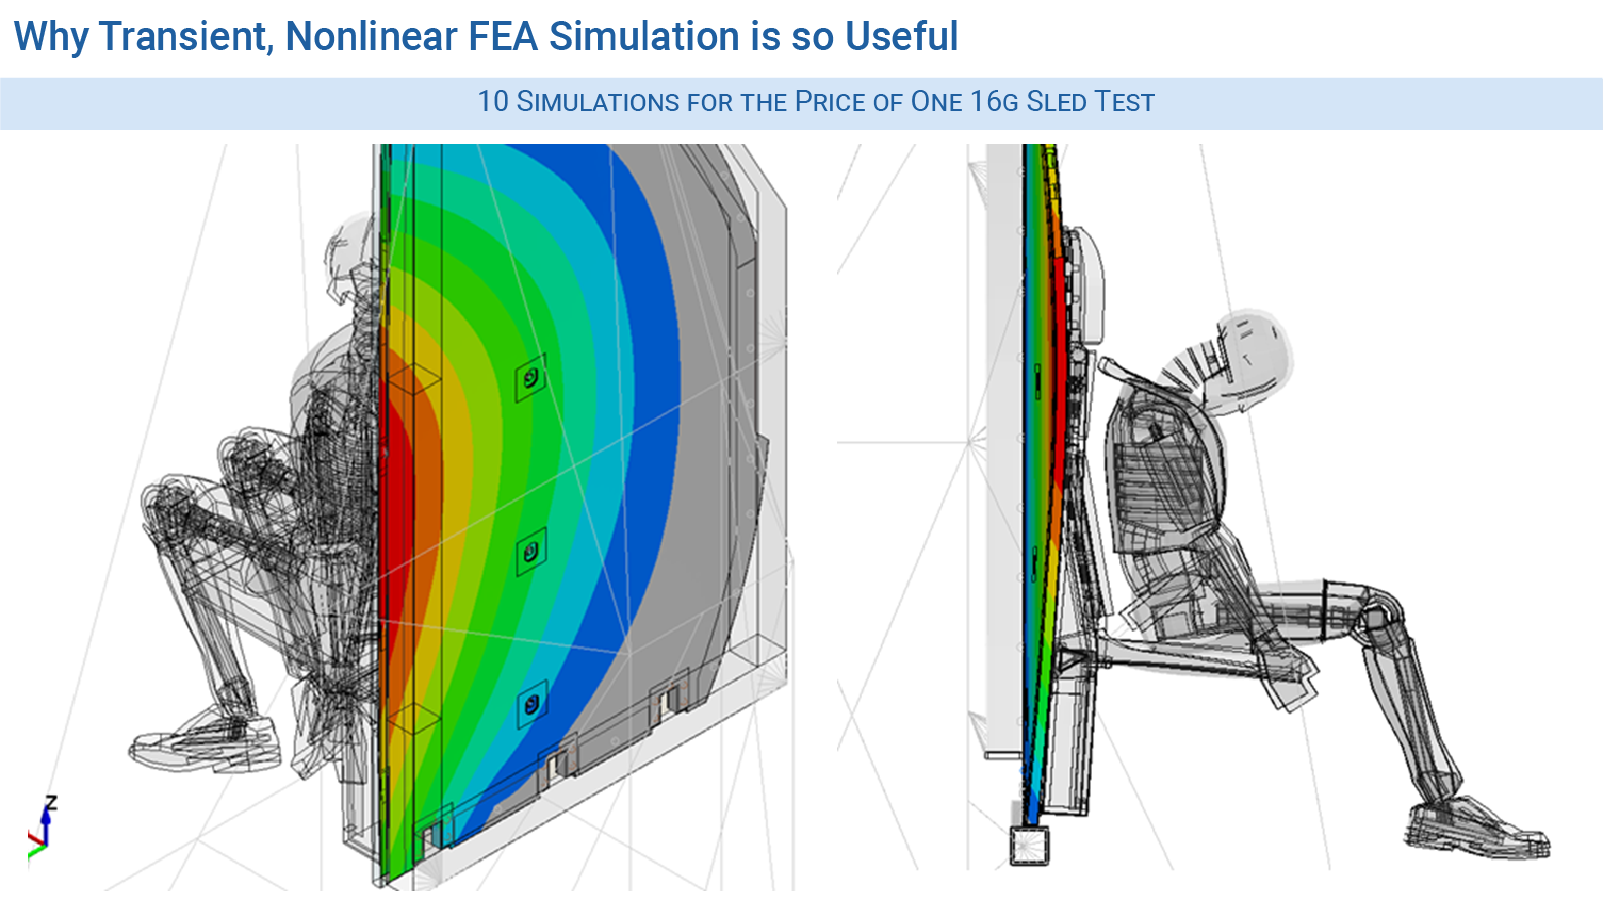 Nonlinear FEA Consulting Services - Why Simulation Makes Money